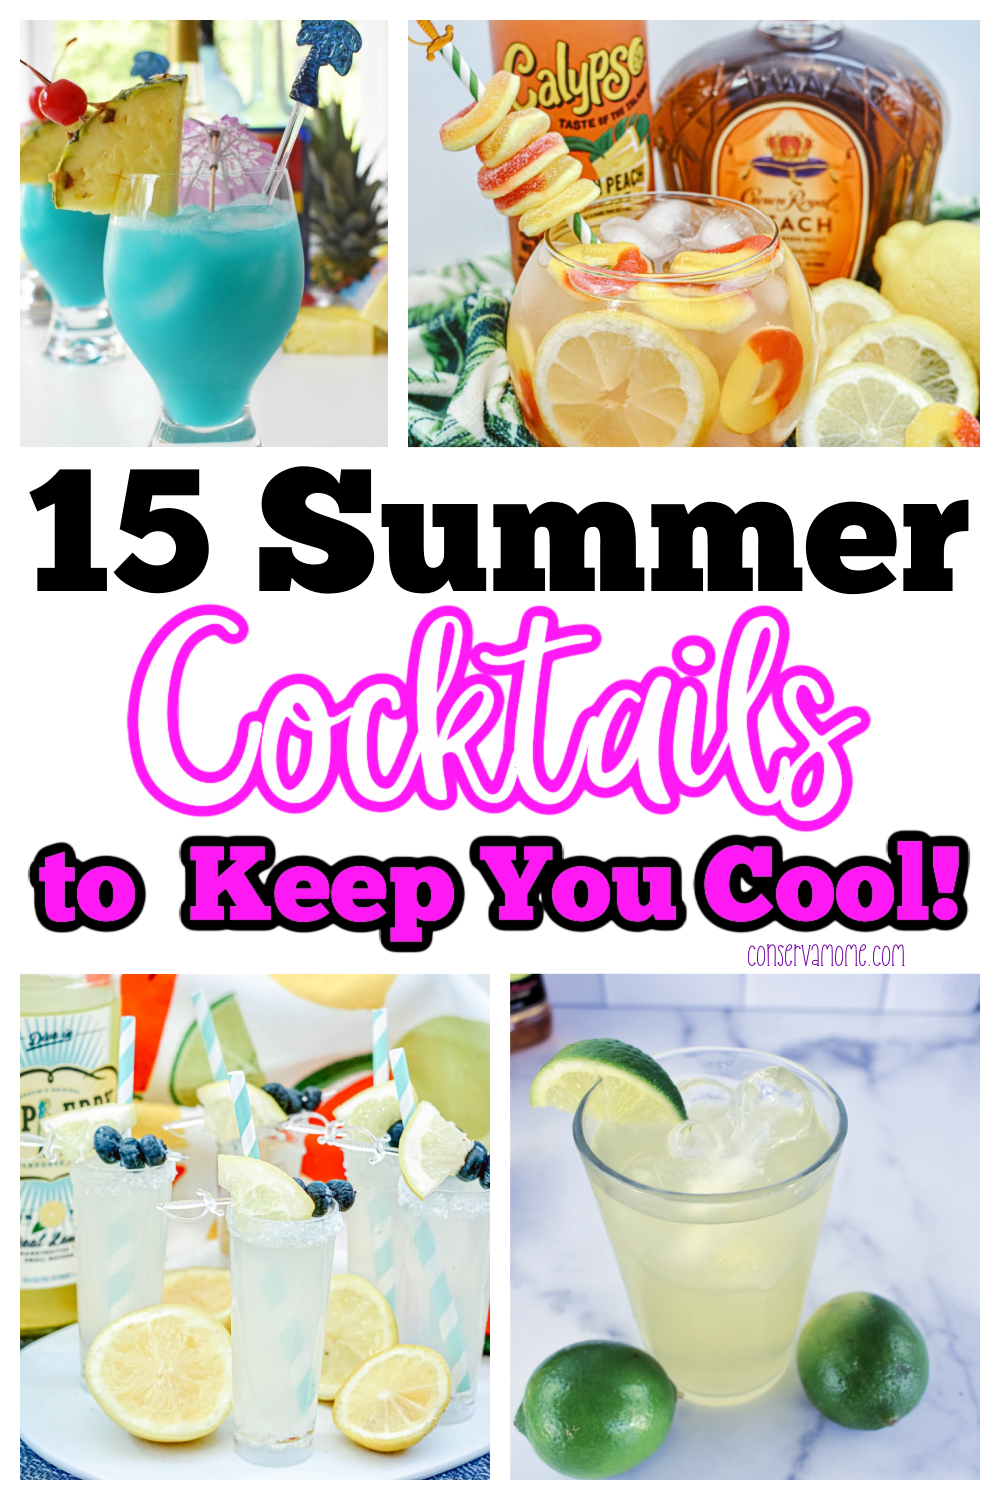 15 summer cocktails to keep you cool